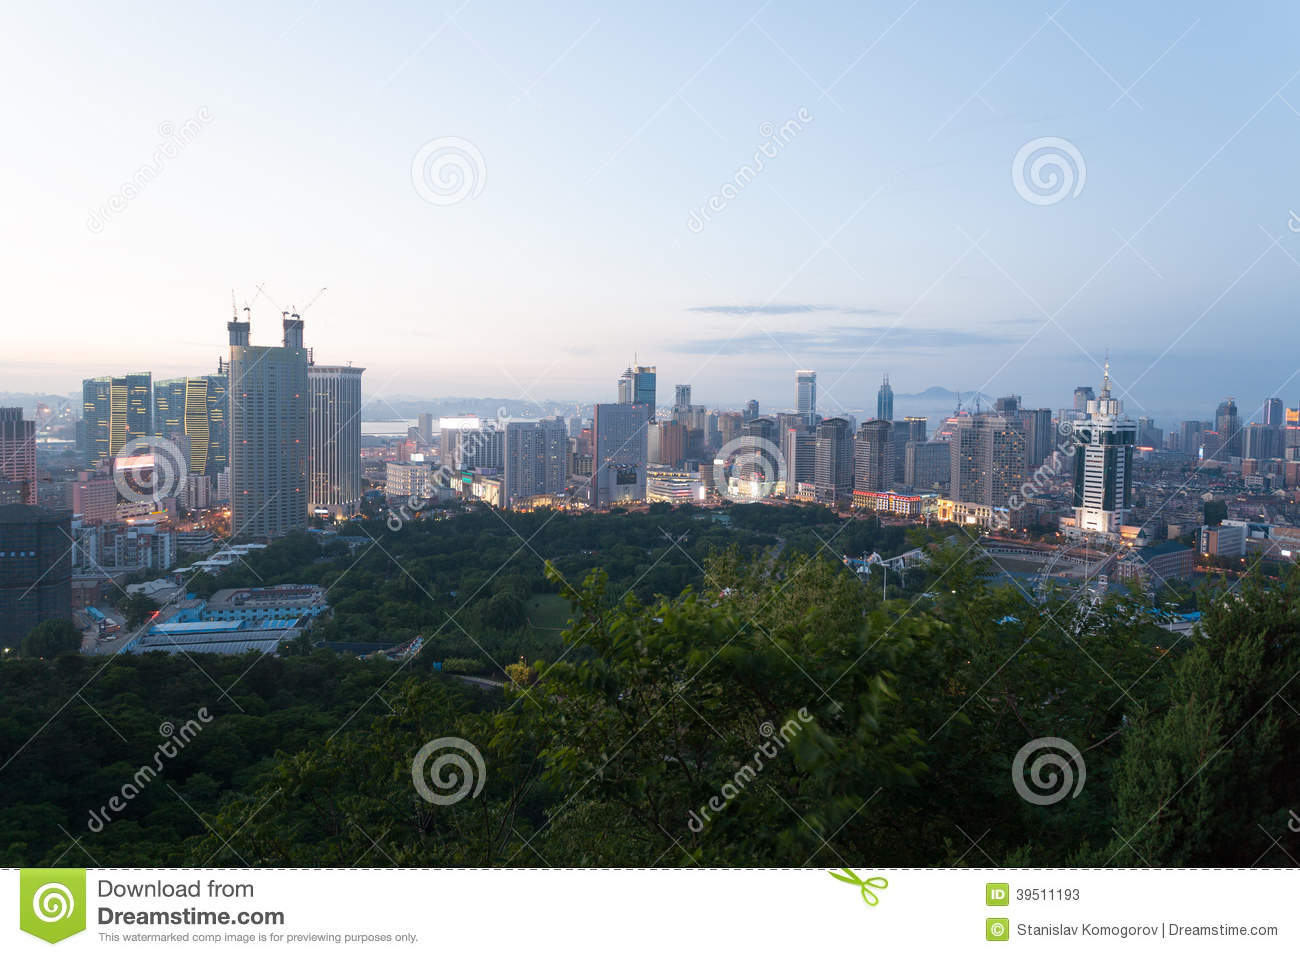 Dalian city in the evening